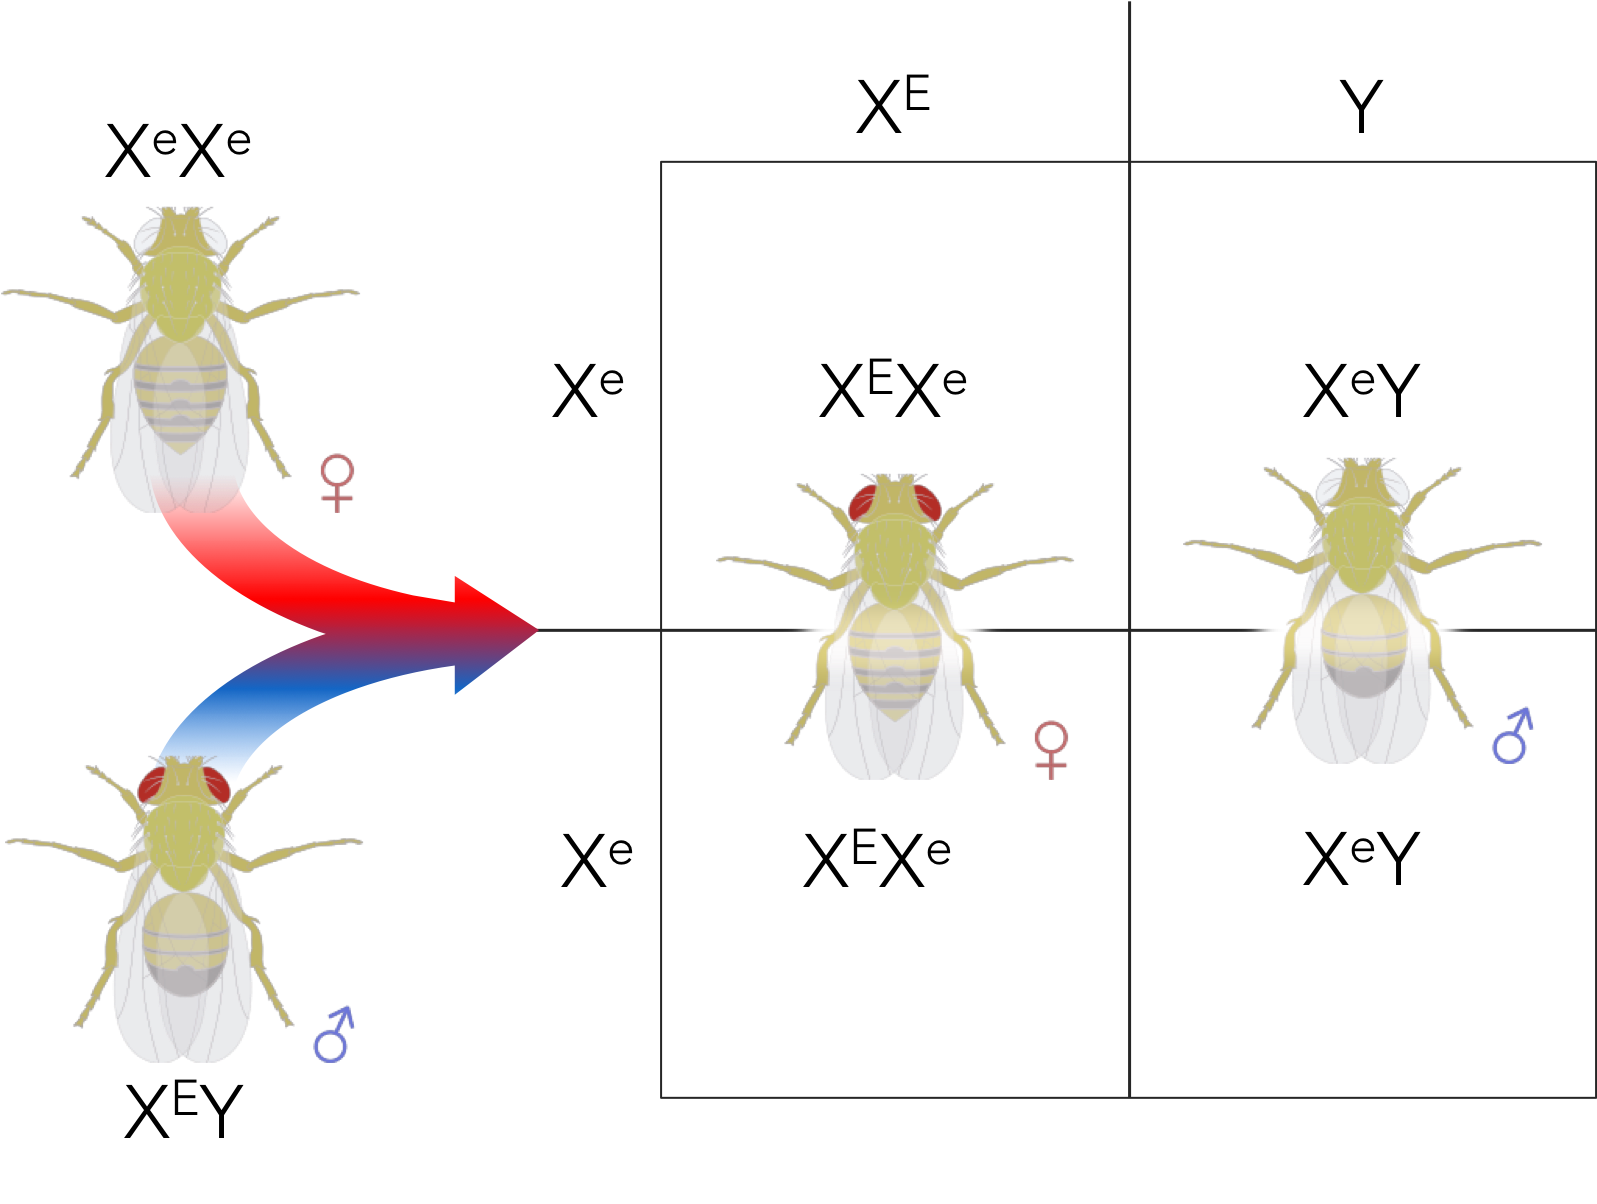 Figure 10.  Expected phenotypic ratio of a cross between a white-eyed female and a red-eyed male.  1 red-eyed female : 1 white-eyed male.